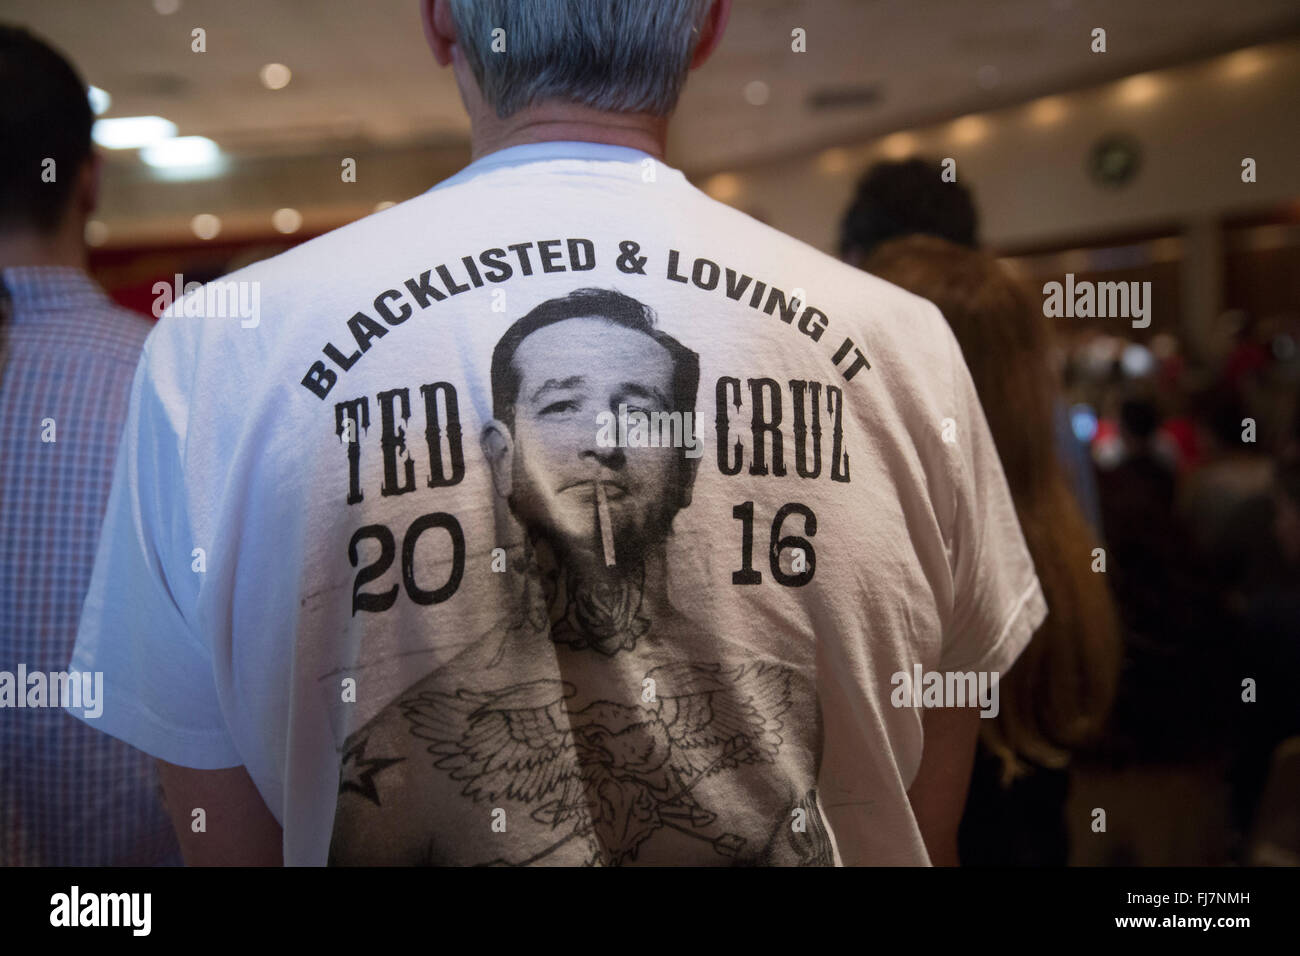 Supporter wears a Ted Cruz tee shirt as Republican presidential nominee candidate Cruz speaks at a political rally - Stock Image